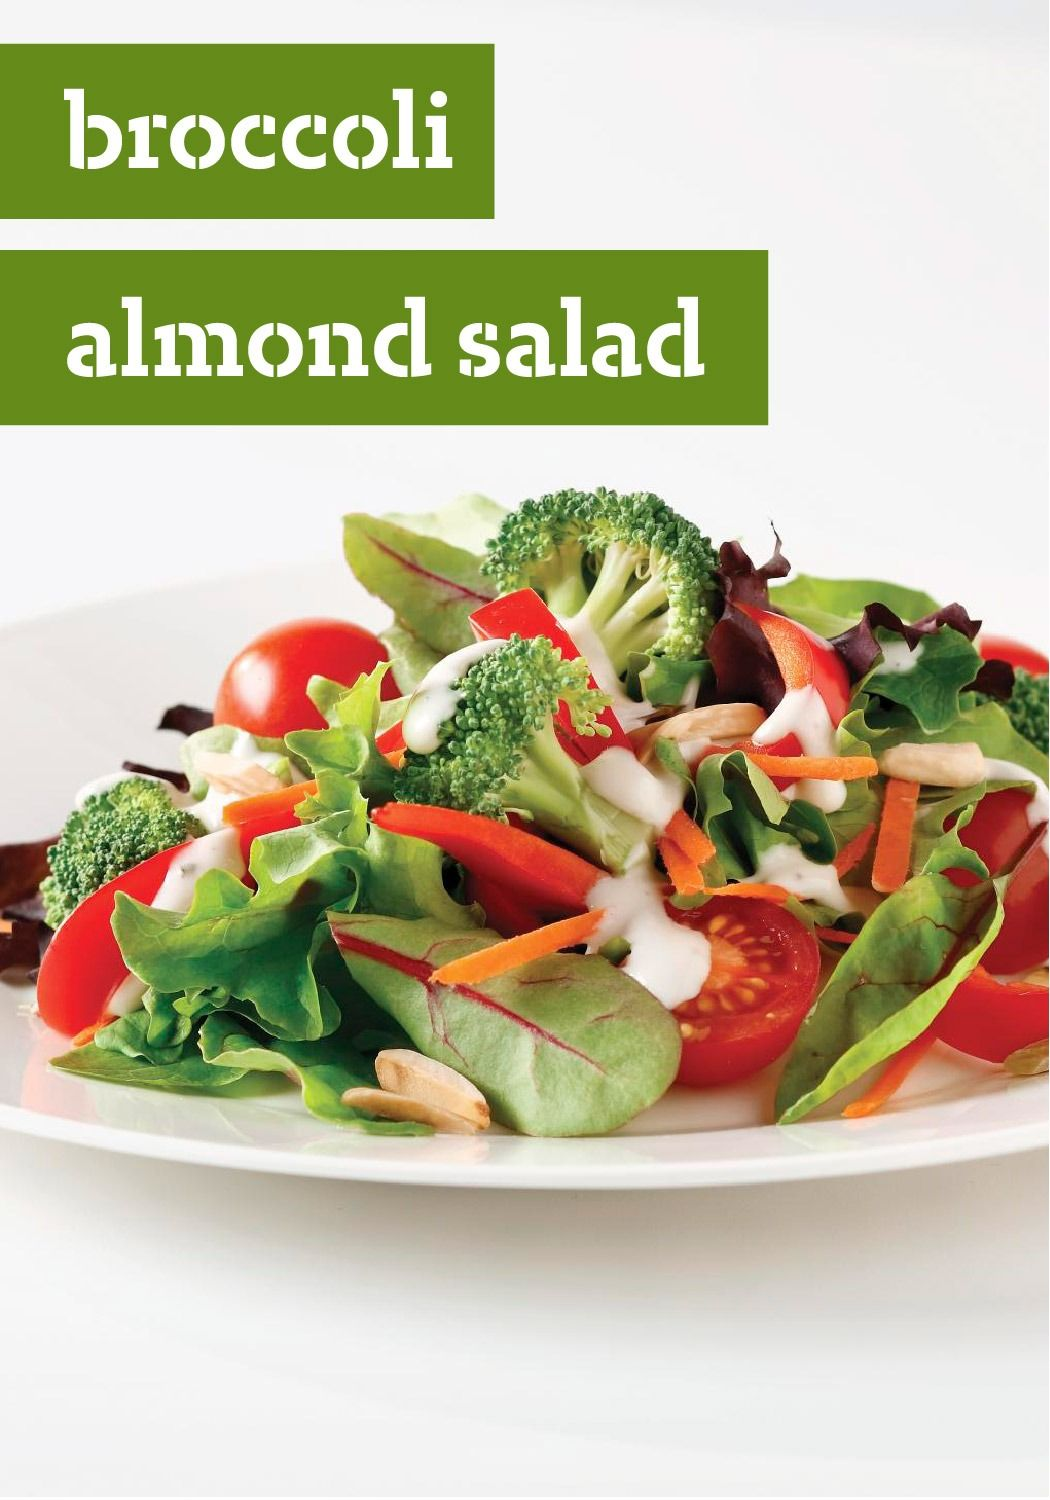 Broccoli and Almond Salad — Colorful broccoli and peppers, crunchy almonds and a drizzle of dressing combine for a refreshing salad you're gonna feel good about.